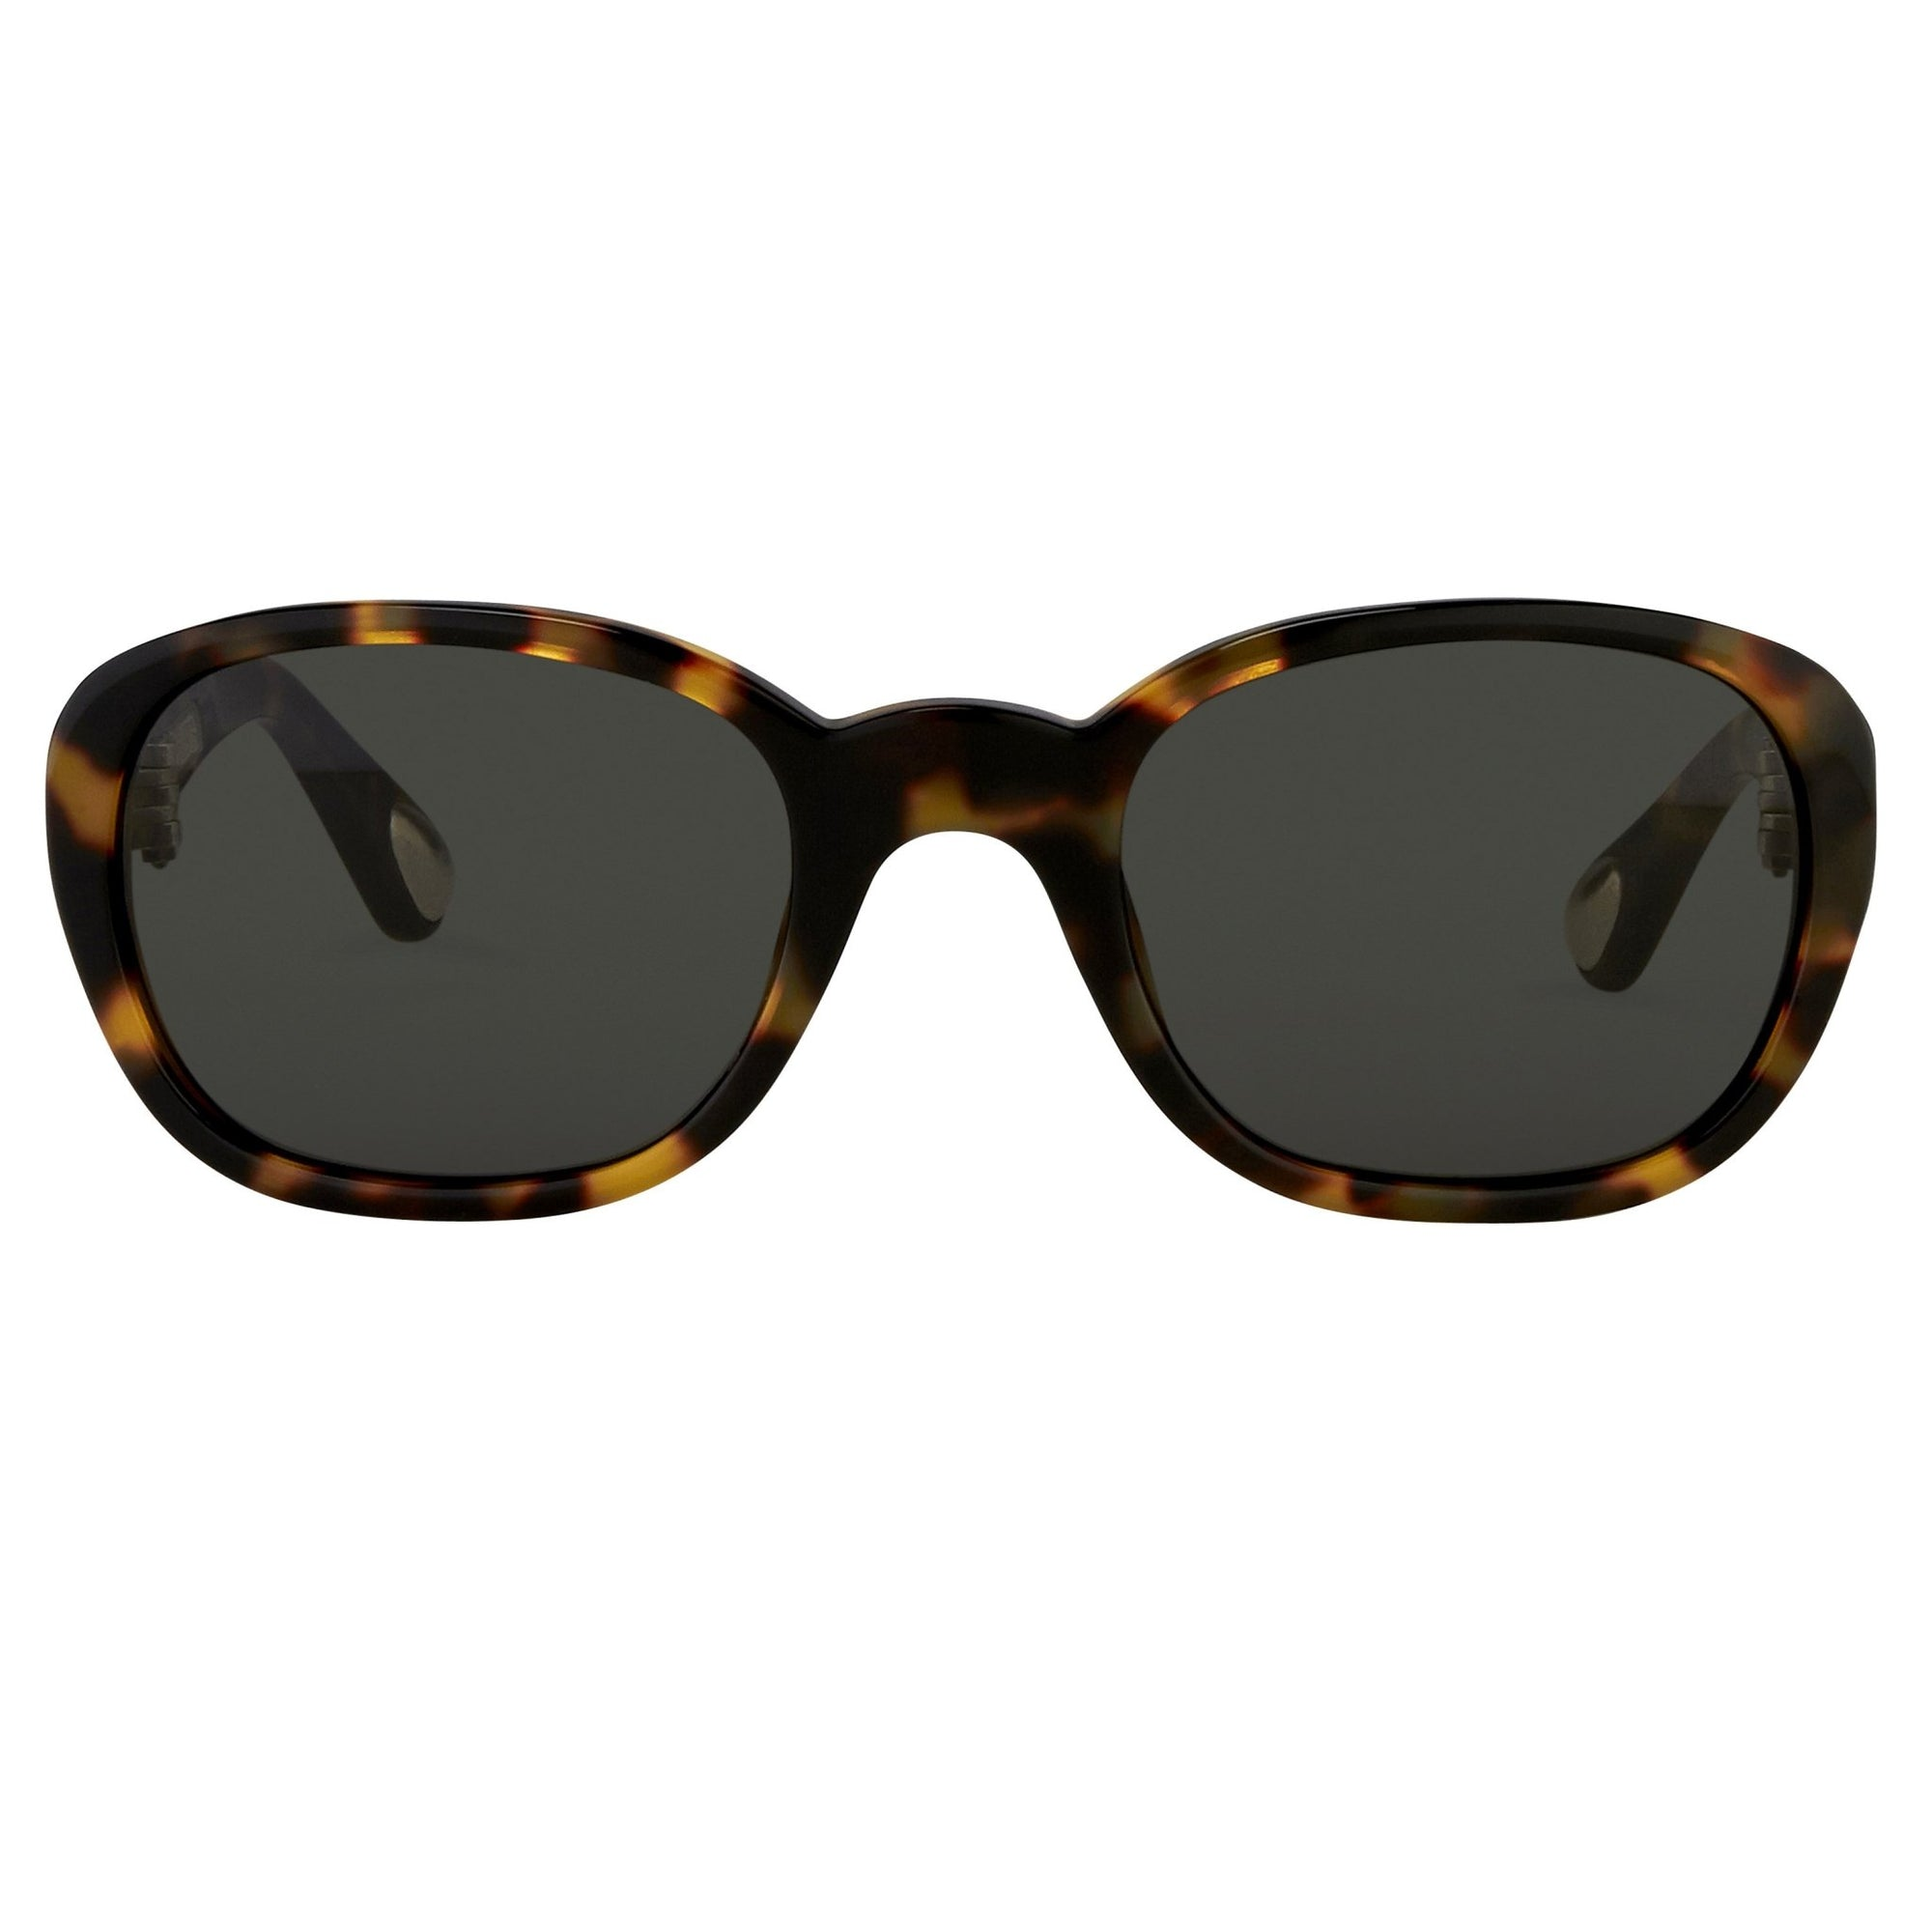 Ann Demeulemeester Sunglasses Oval Tortoise Shell 925 Silver with Grey Lenses Category 3 AD8C2SUN - Watches & Crystals